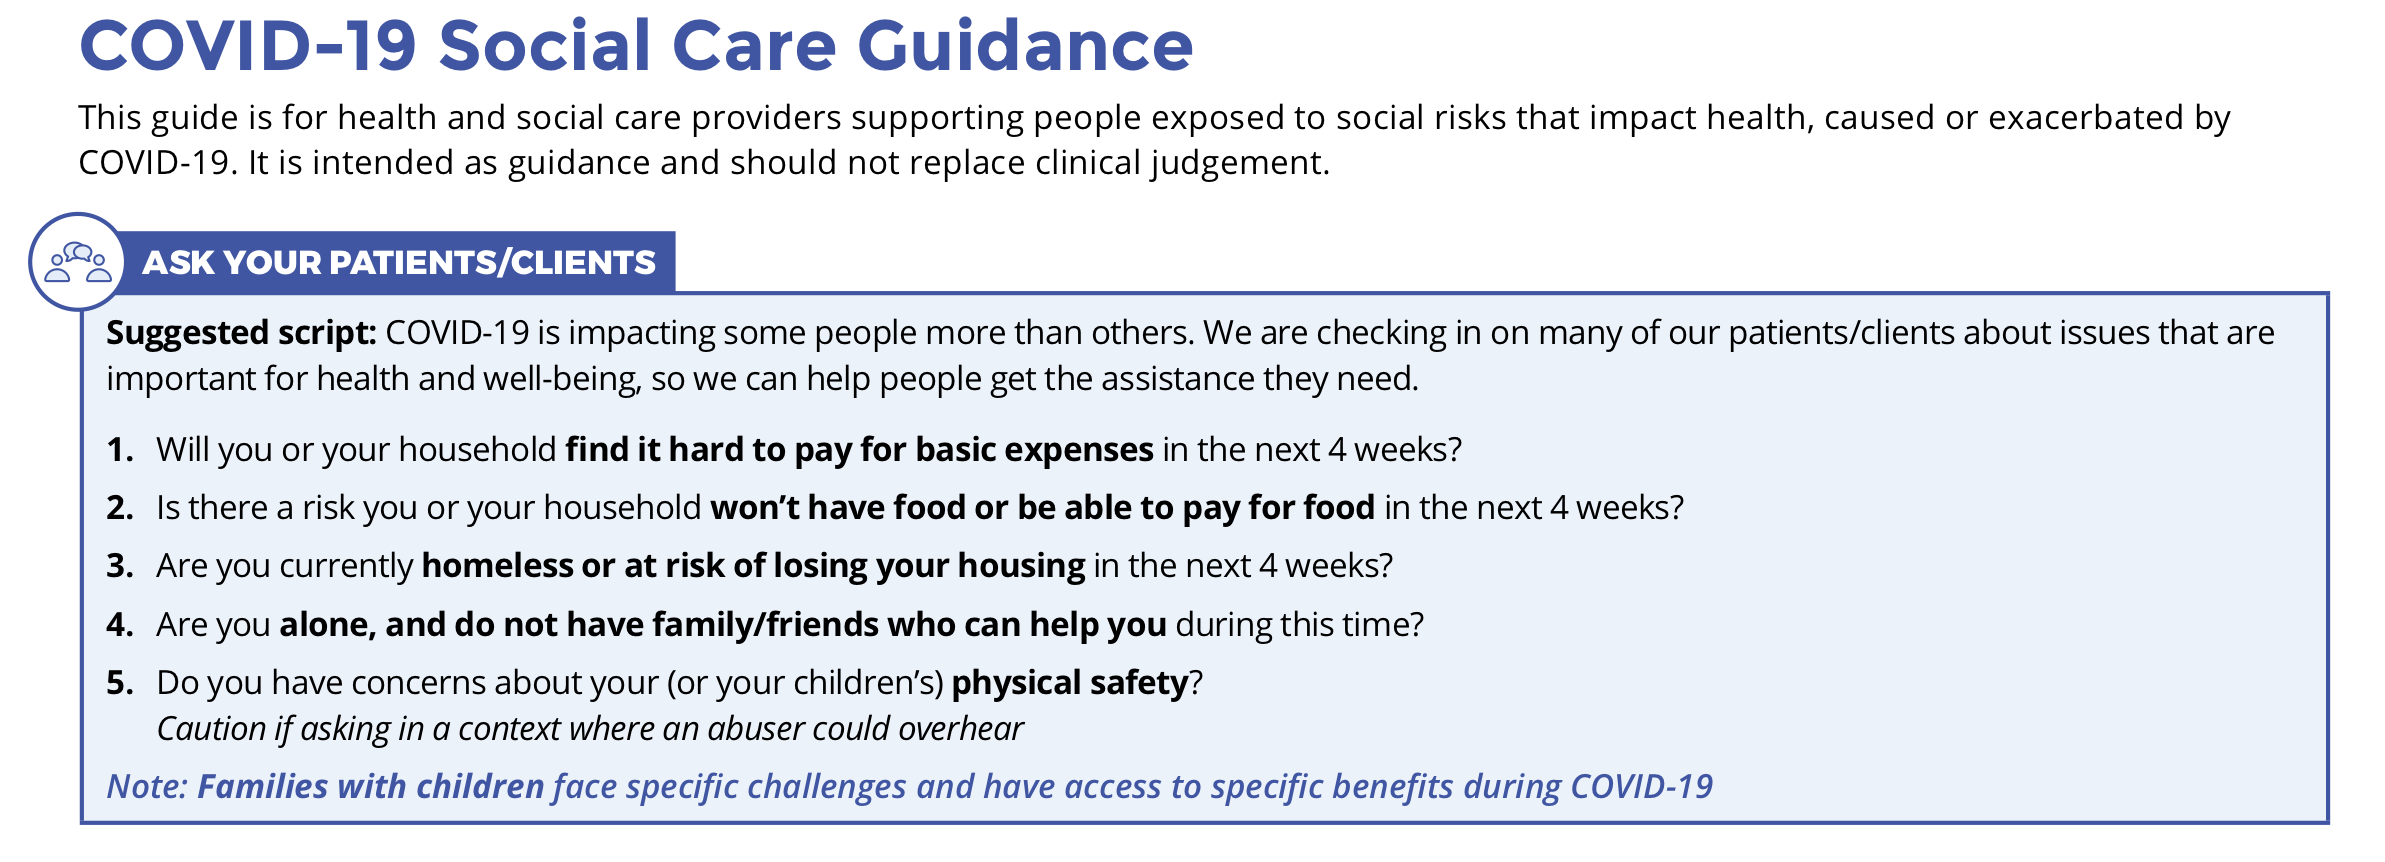 COVID-19 Social Care Guidance